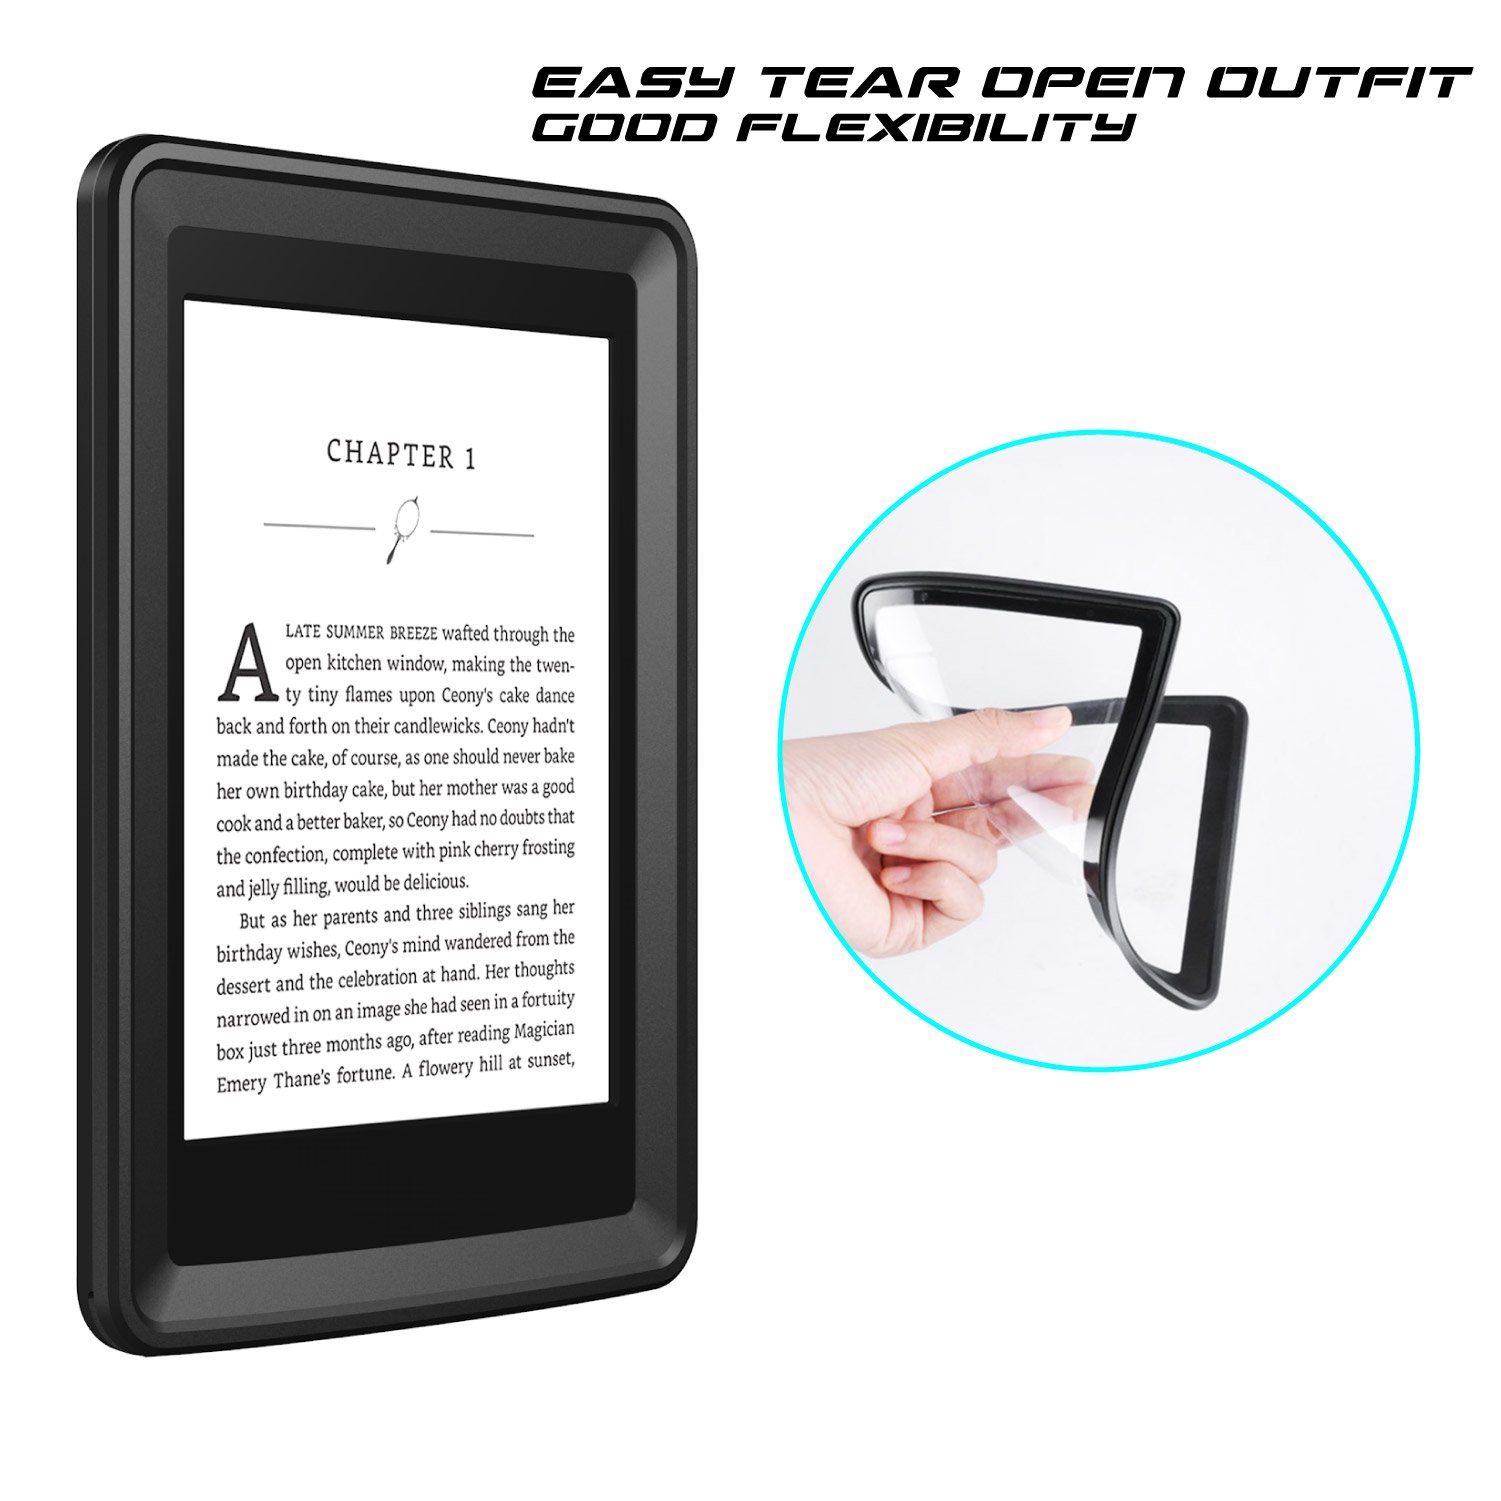 Temdan Kindle Paperwhite Waterproof Case Rugged Sleek Transparent Cover with Built in Screen Protector Waterproof Case for Kindle Paperwhite. by Temdan (Image #5)